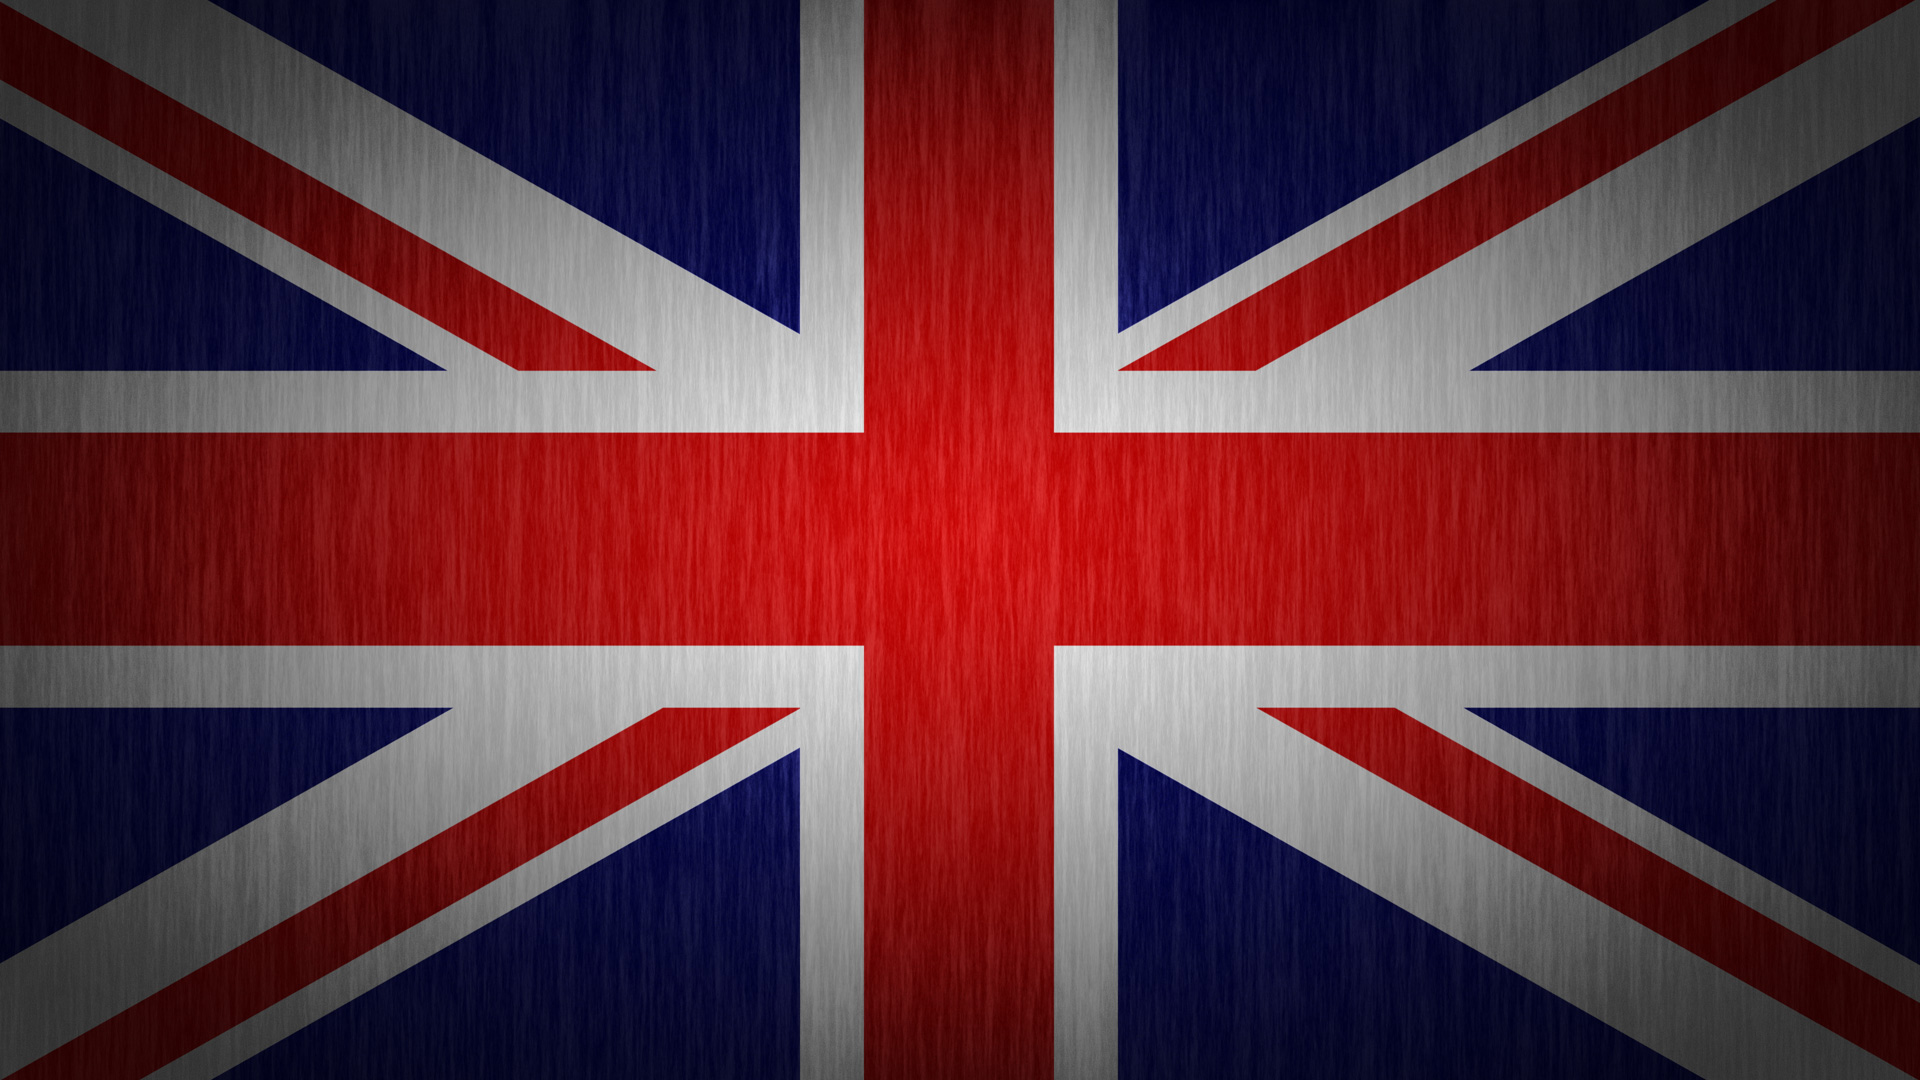 British United Kingdom Flag HD Wallpaper of Flag   hdwallpaper2013com 1920x1080